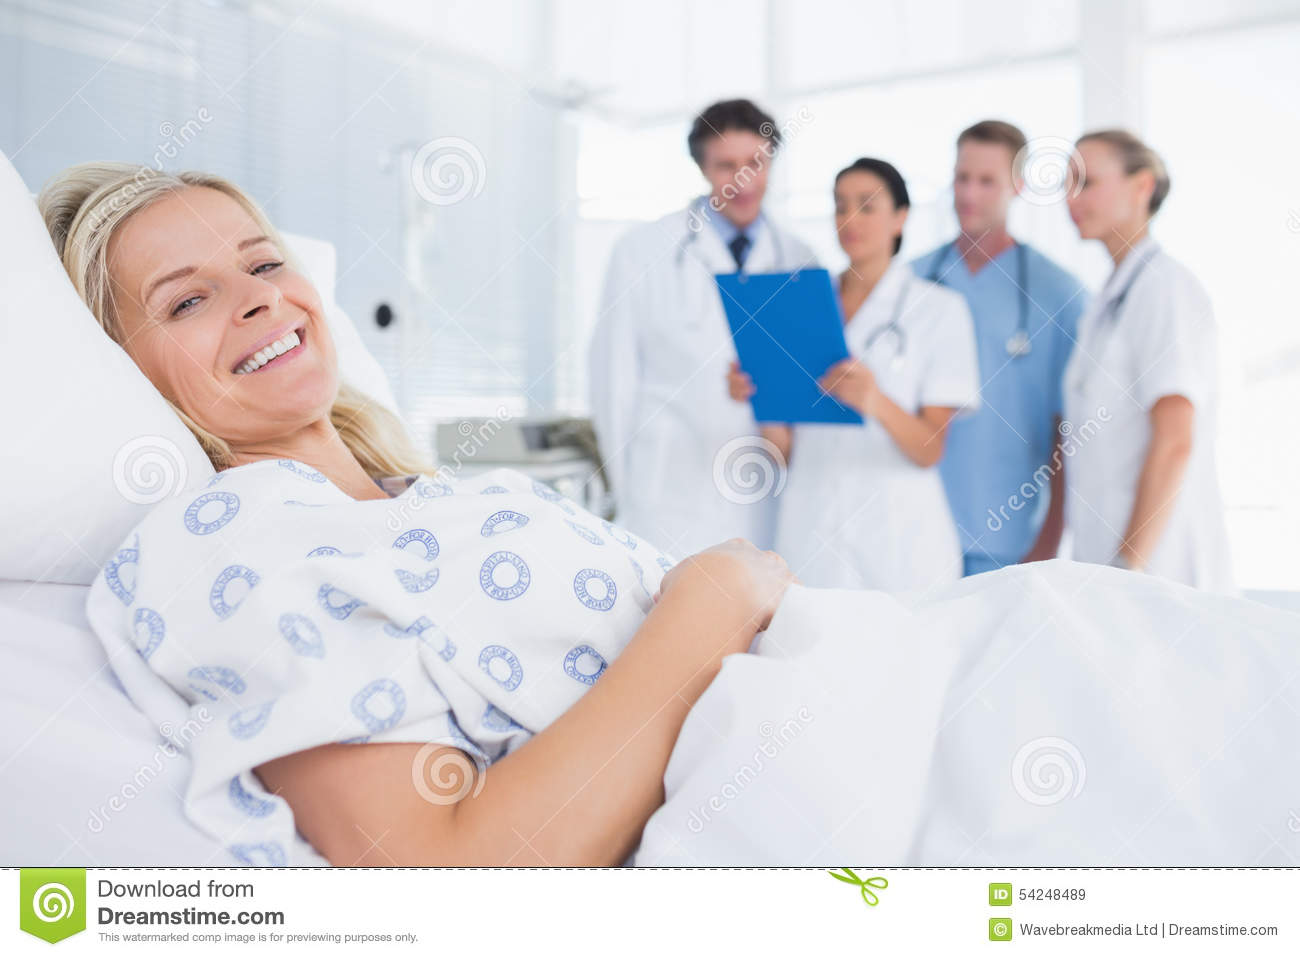 smiling patient looking at camera with doctors behind